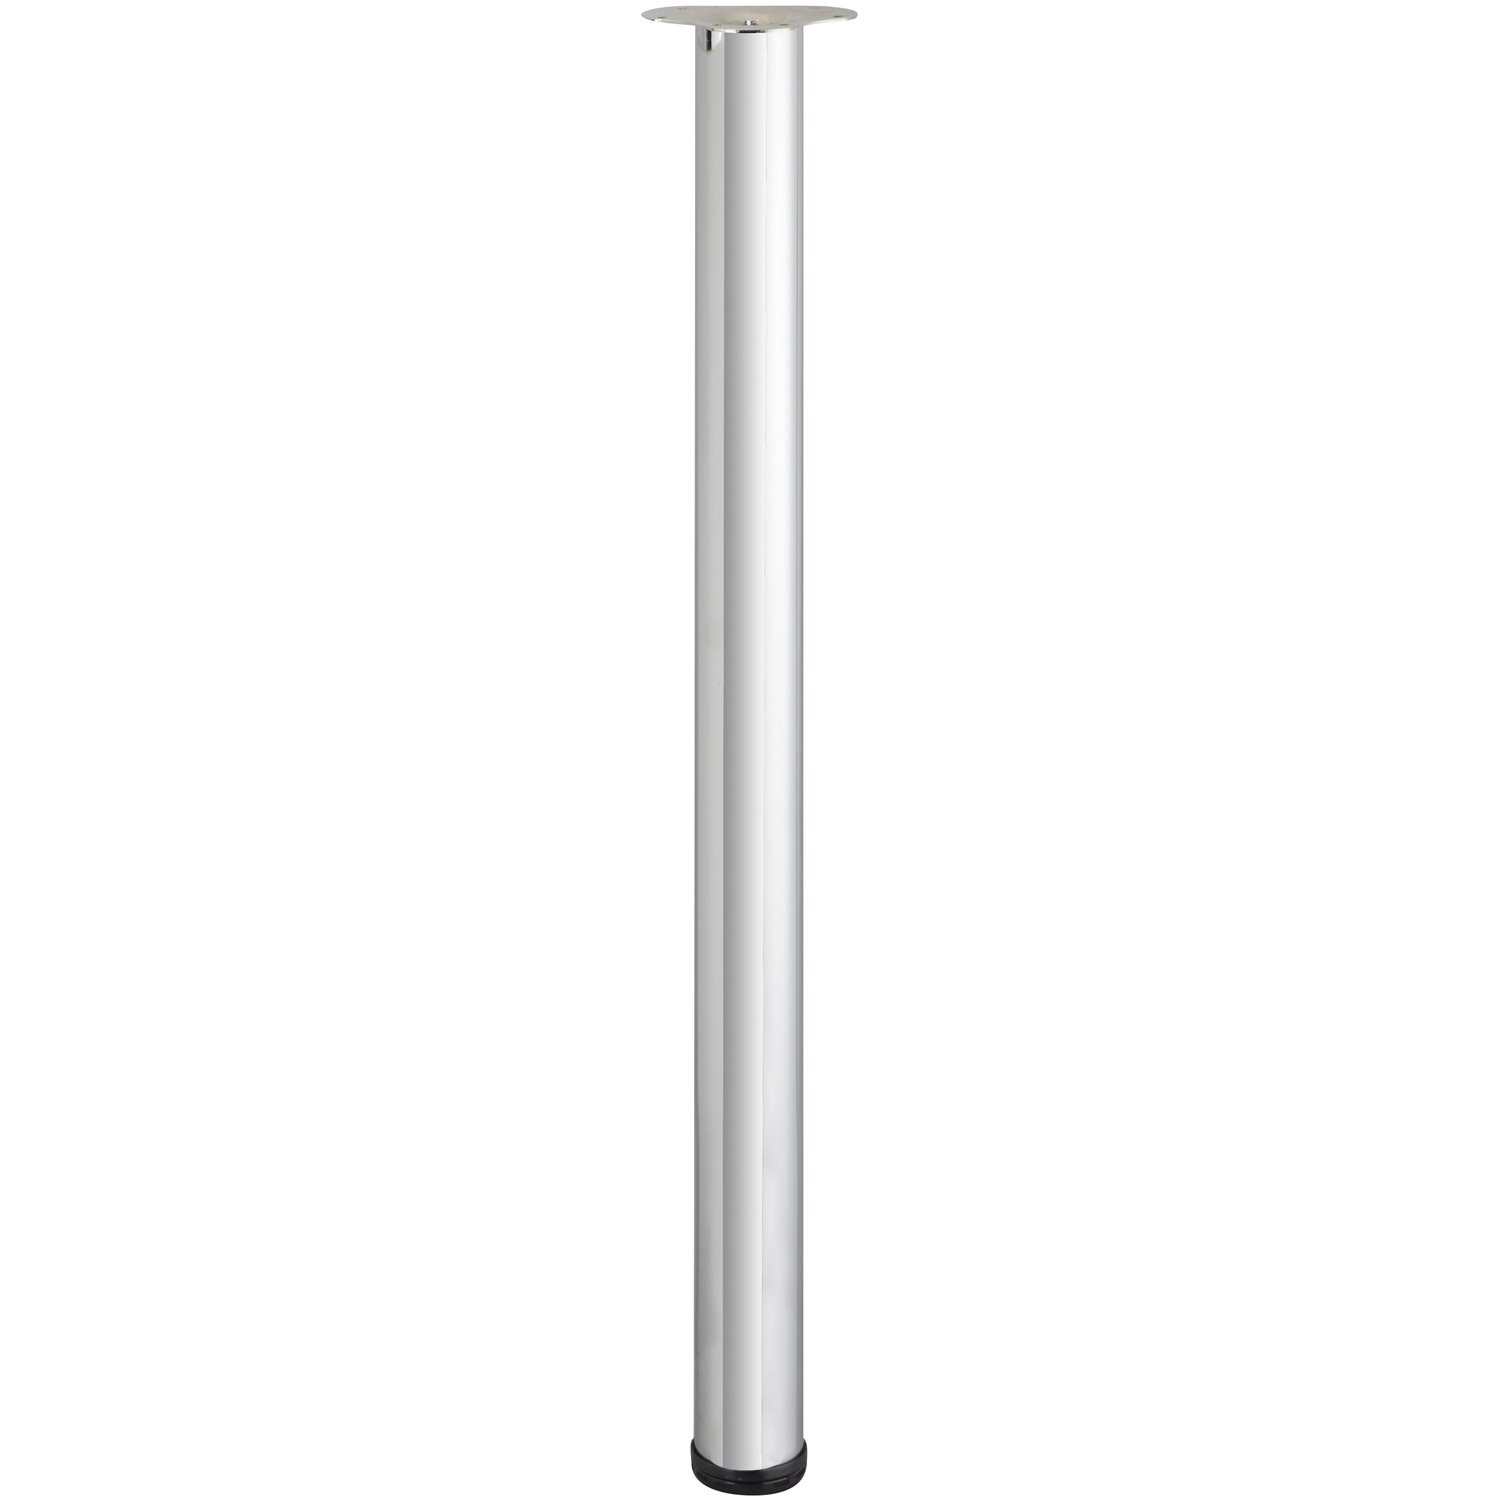 Pied de table cylindrique r glable acier chrom gris de 110 113 cm leroy merlin - Pied de table leroy merlin ...